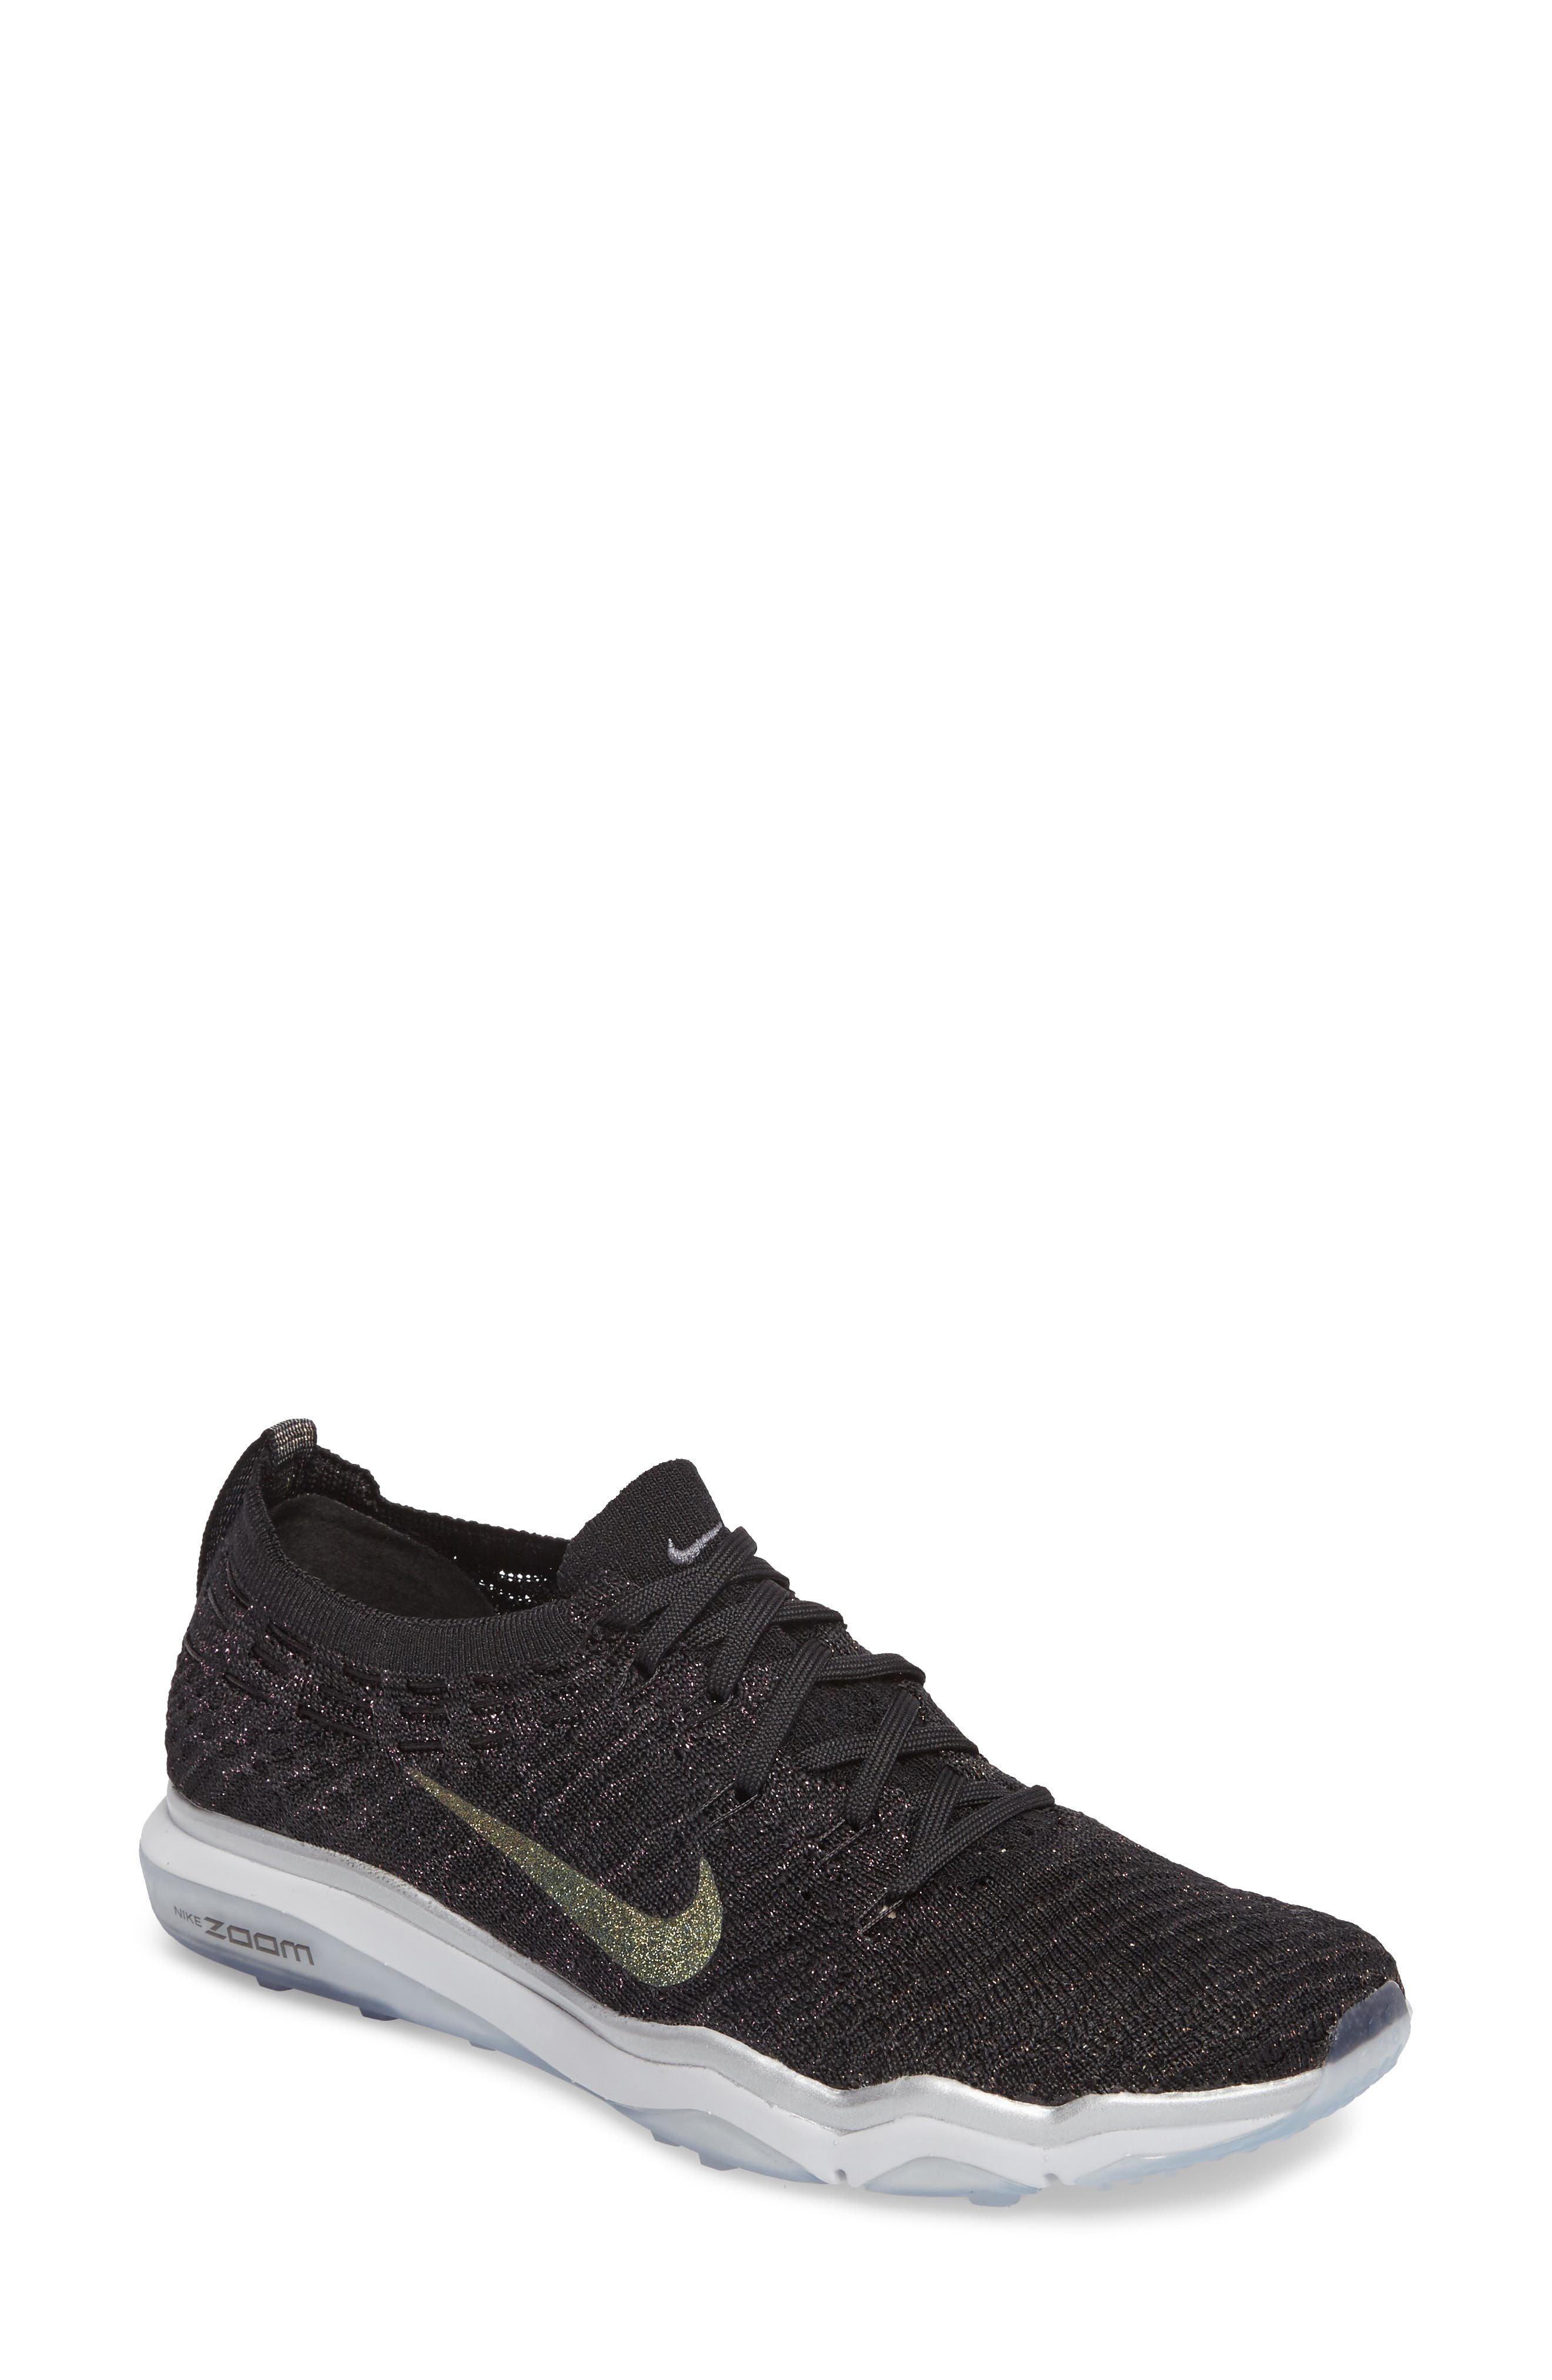 Air Zoom Fearless Flyknit Metallic Training Shoe,                         Main,                         color, Black/ Dark Grey/ Silver